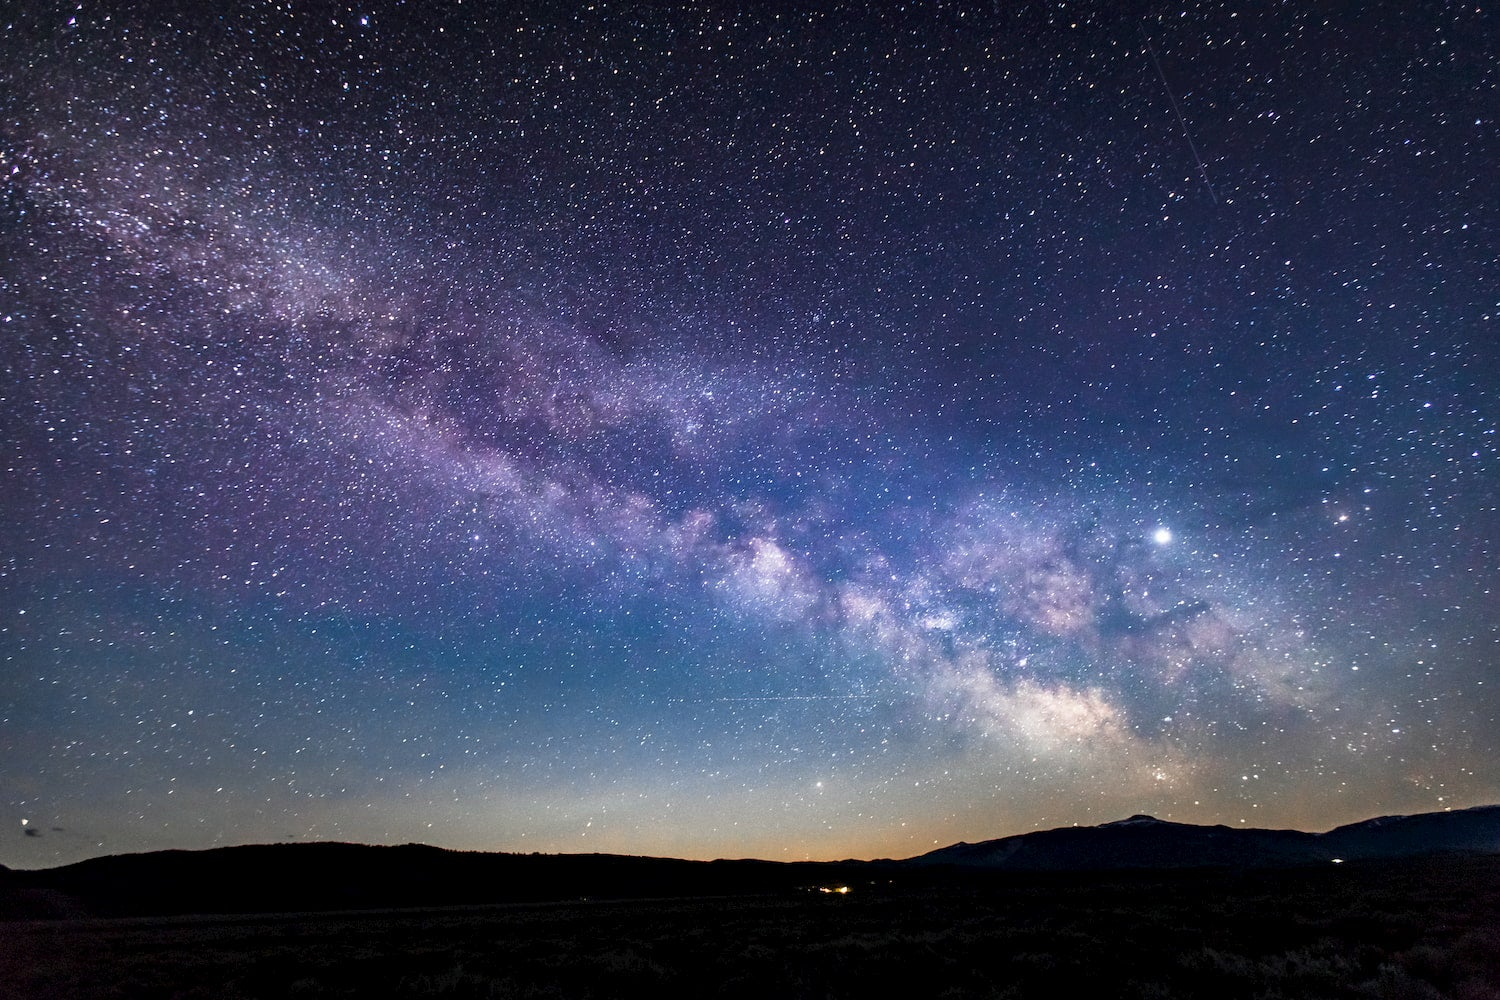 milky way as seen from wyoming